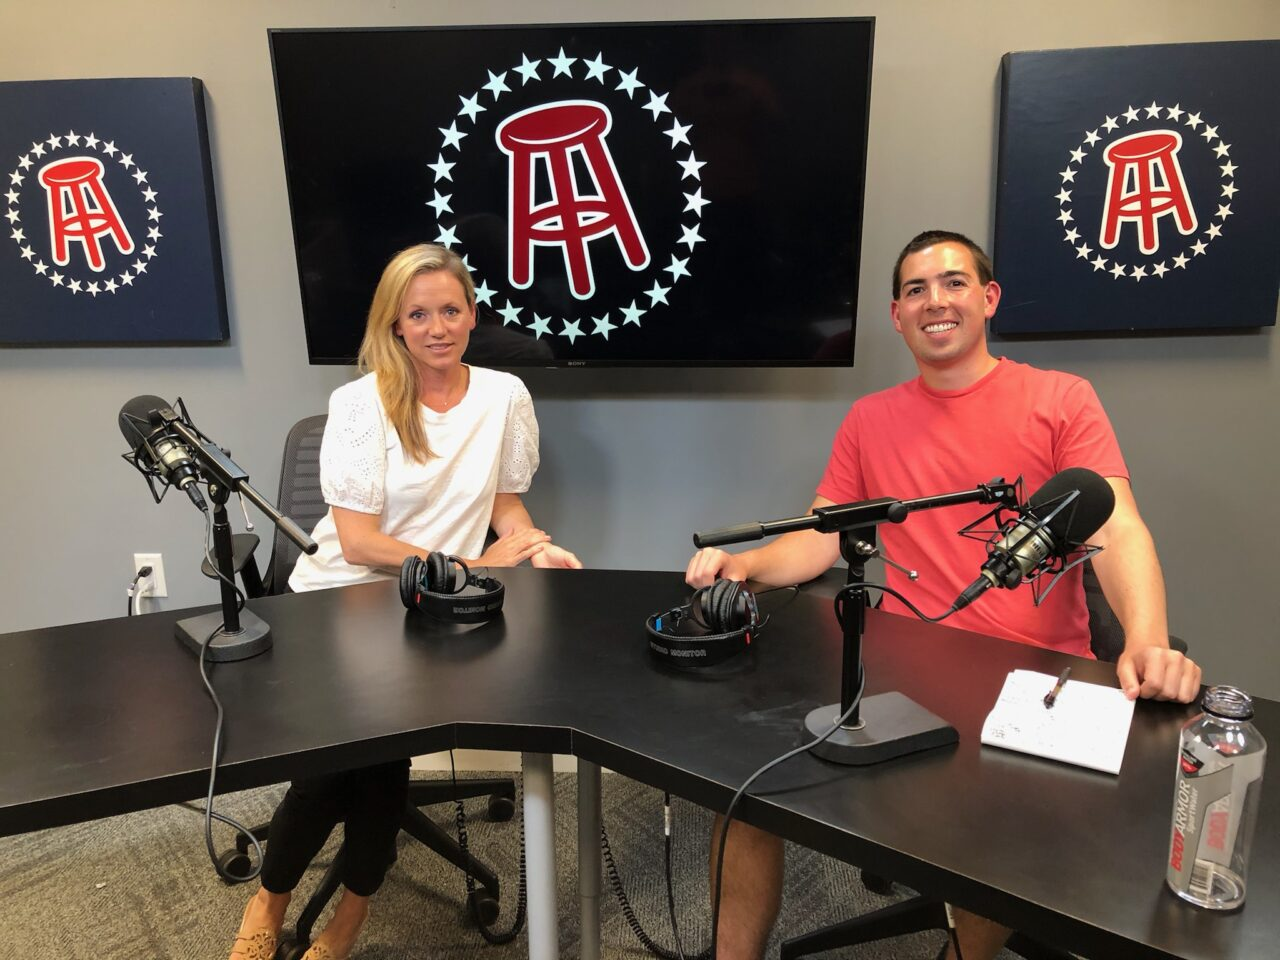 Deirdre Lester Podcast Studio - Wild Business Growth Podcast #152: Chief Revenue Officer of Barstool Sports